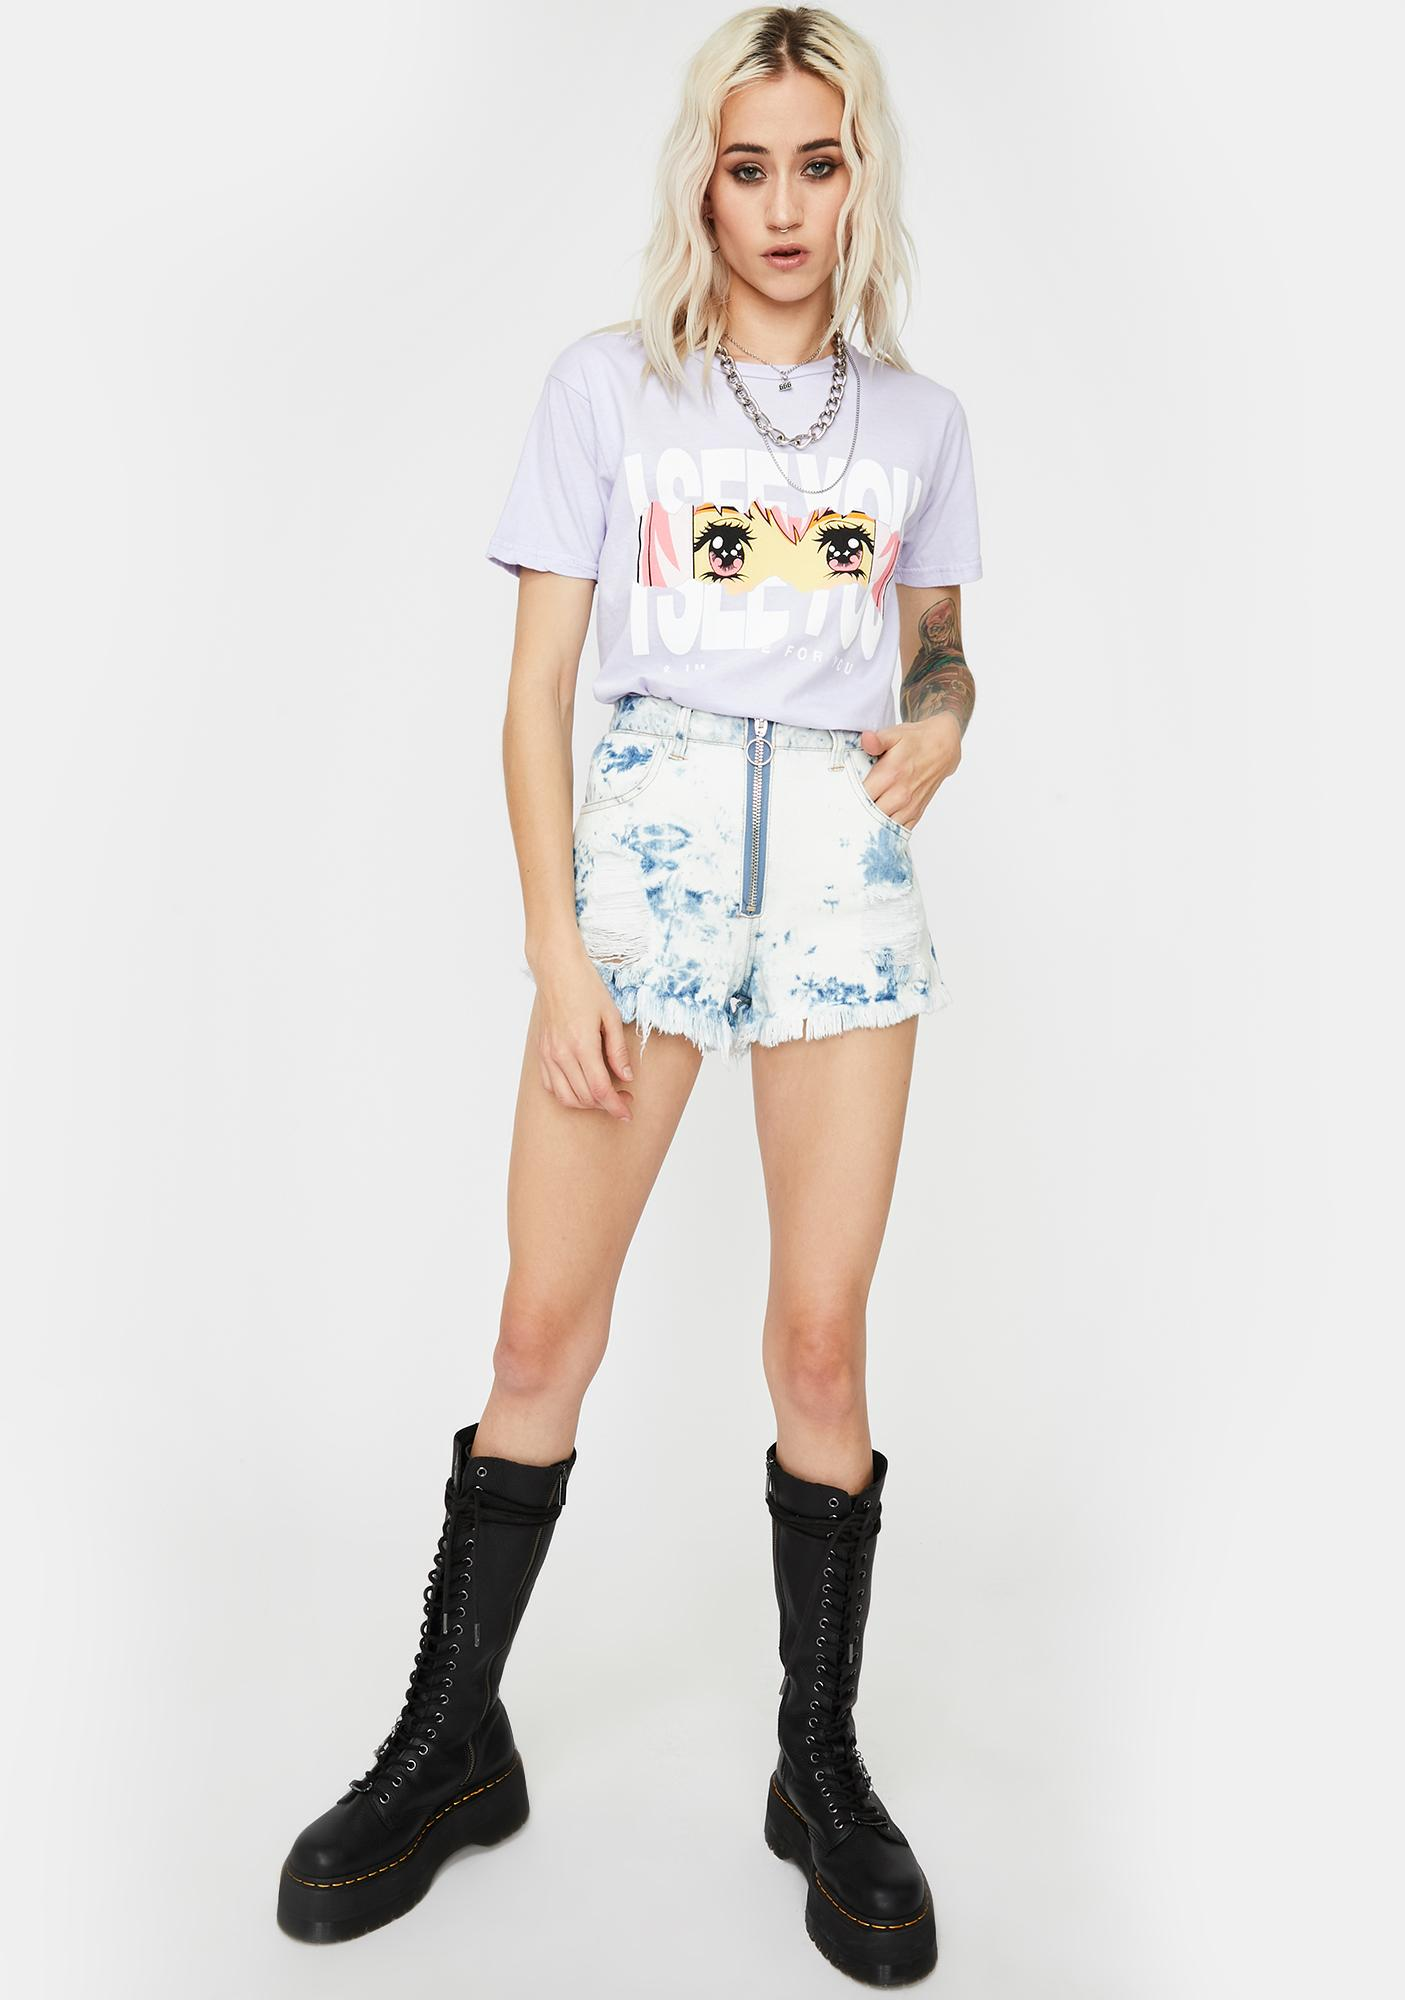 By Samii Ryan Lavender Here For You Graphic Tee